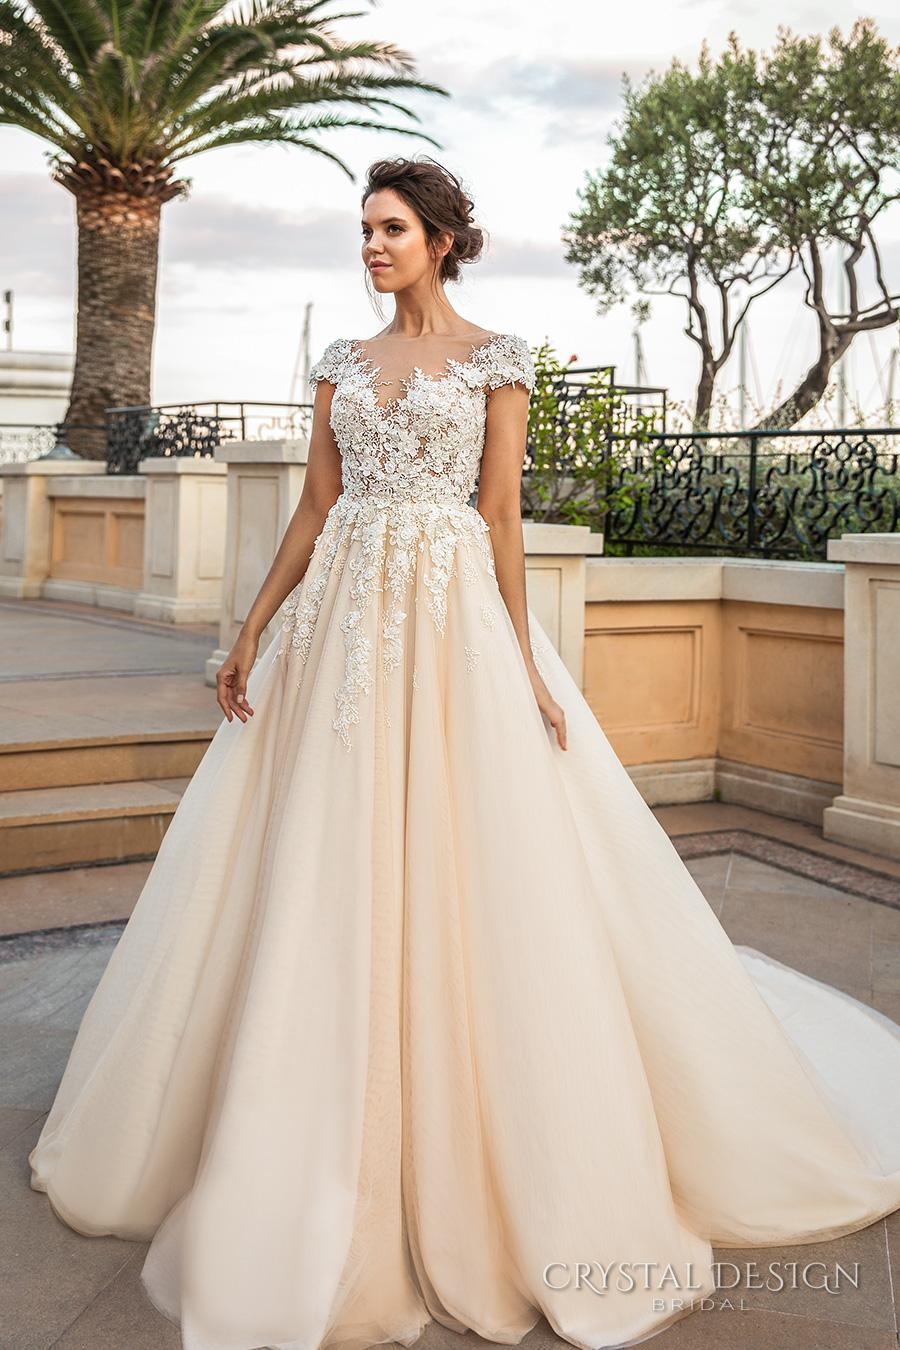 Wedding Elegant dresses pictures